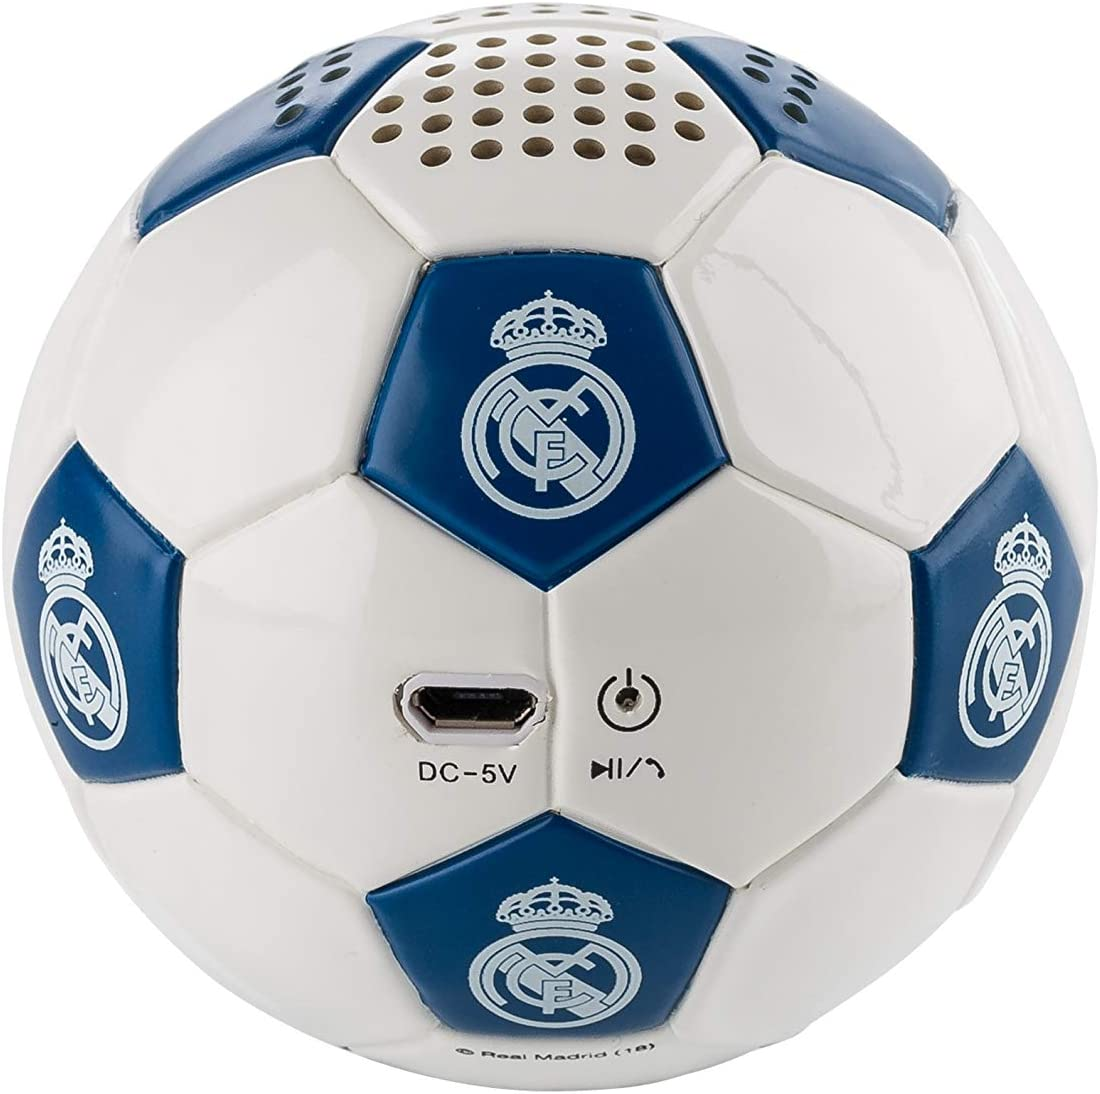 Real Madrid - Altavoz Inalámbrico Balón, Blanco/Azul: Amazon.es ...